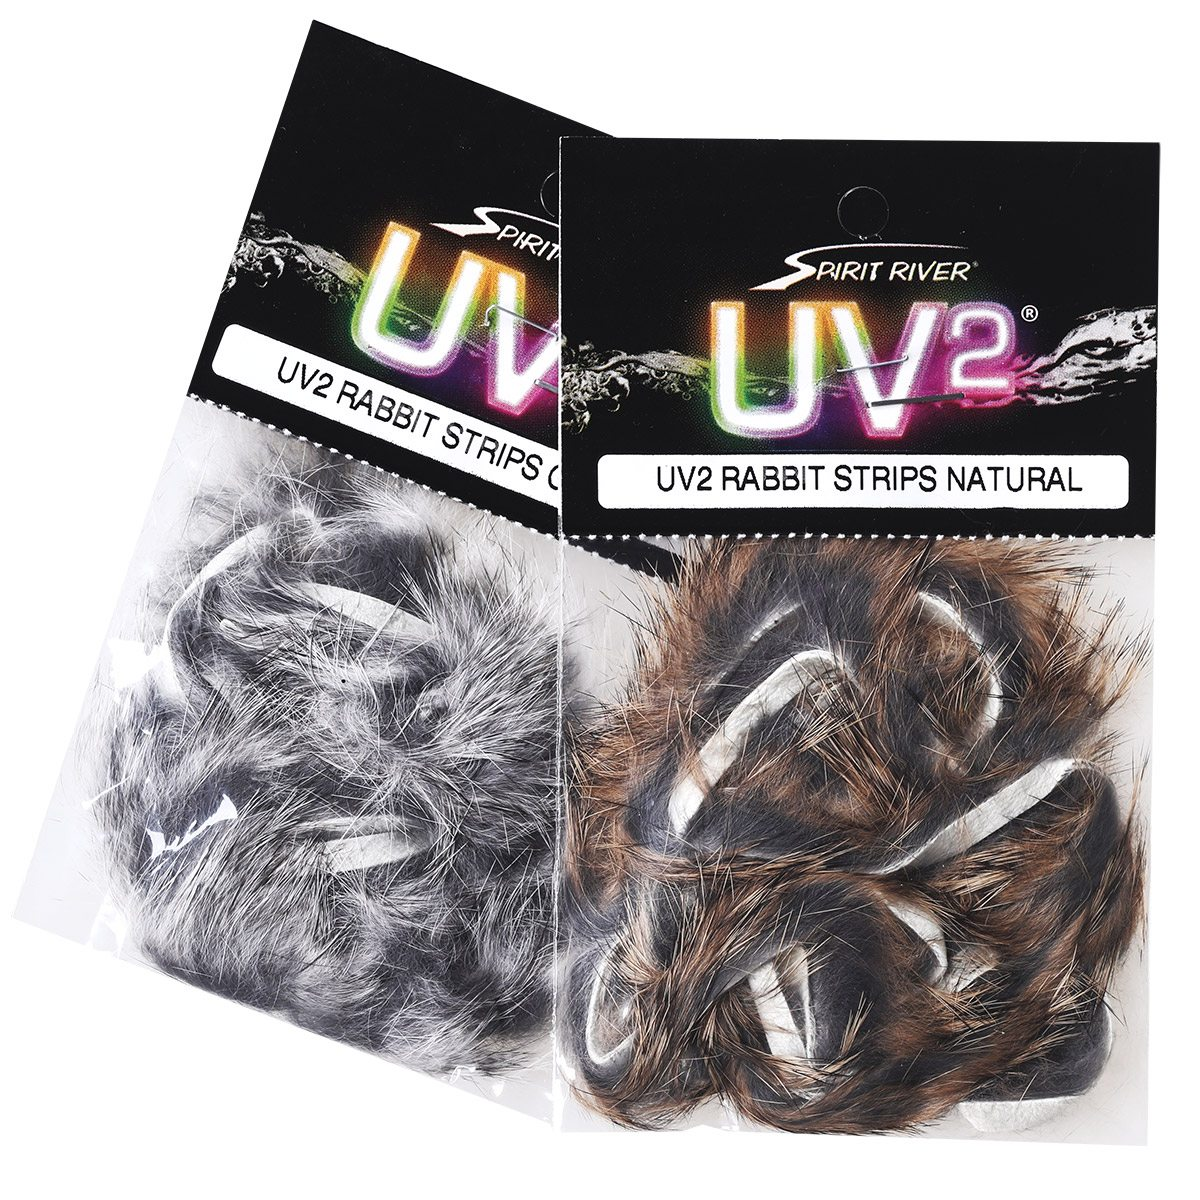 Spirit River UV2 Rabbit Strips